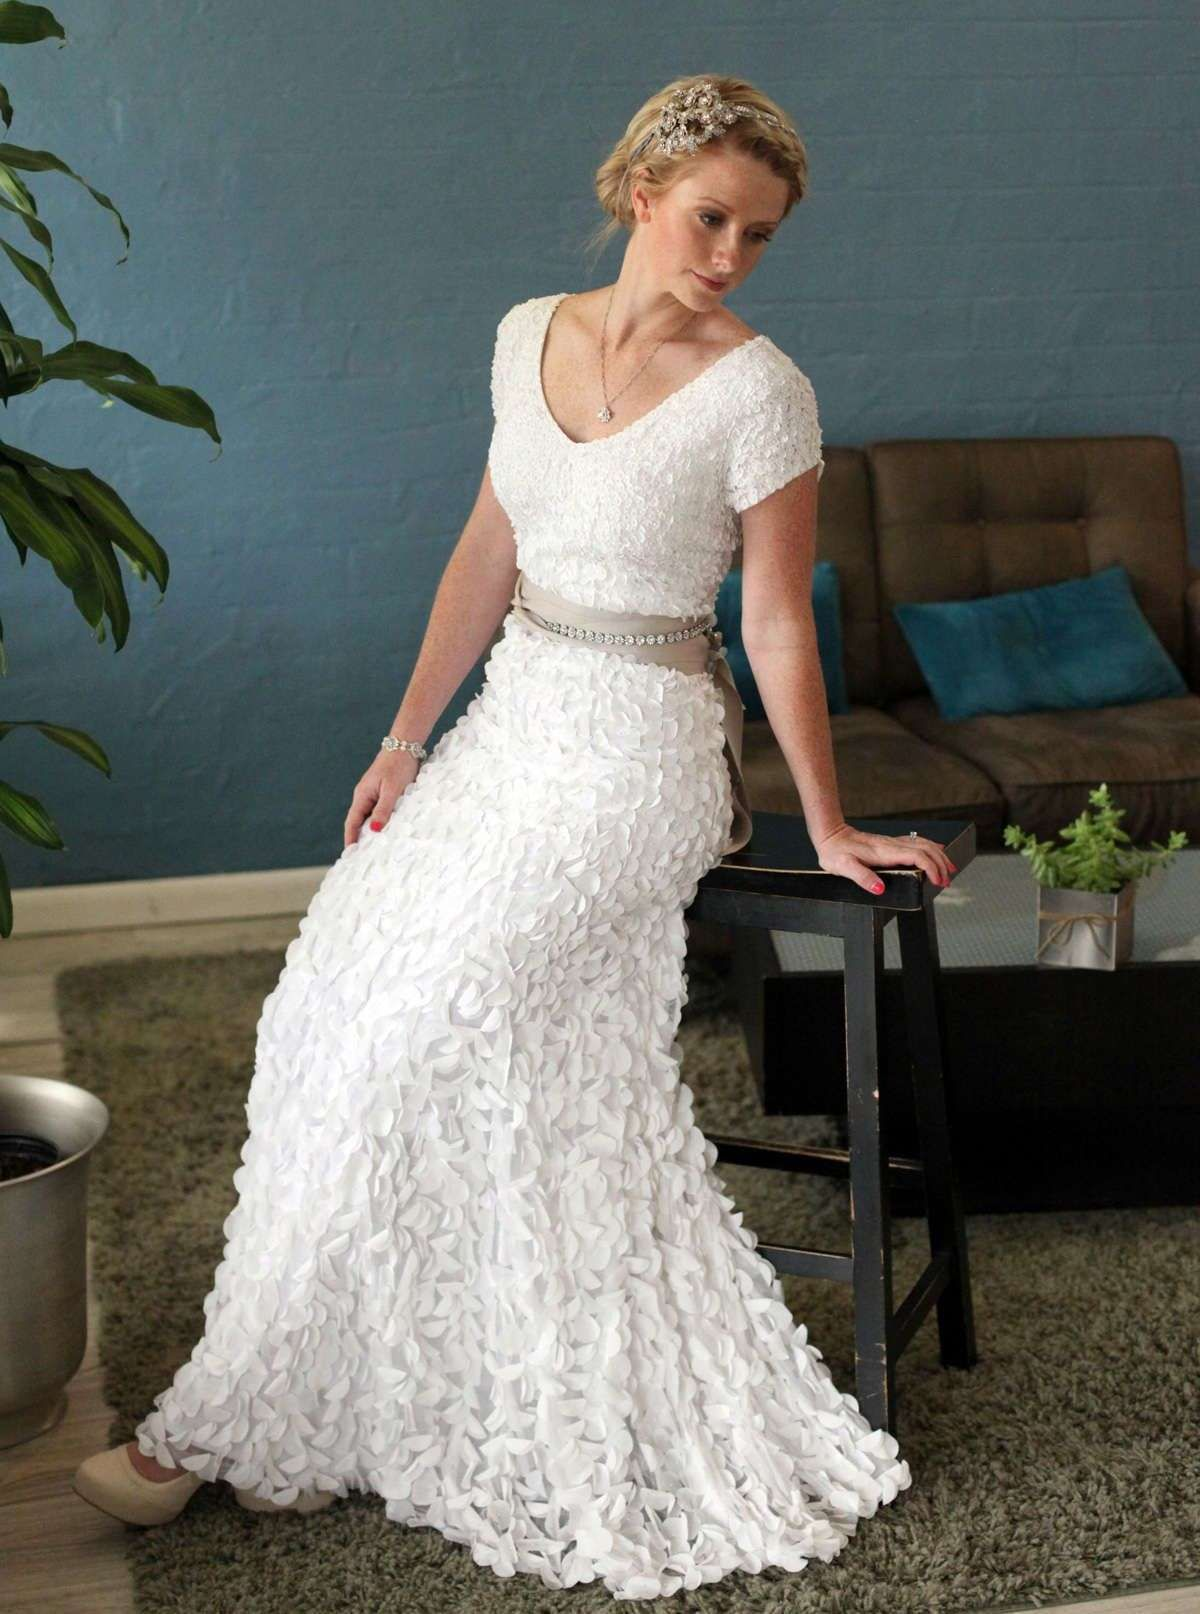 2nd wedding dresses older bride 1080p hd pictures With wedding dresses for senior brides